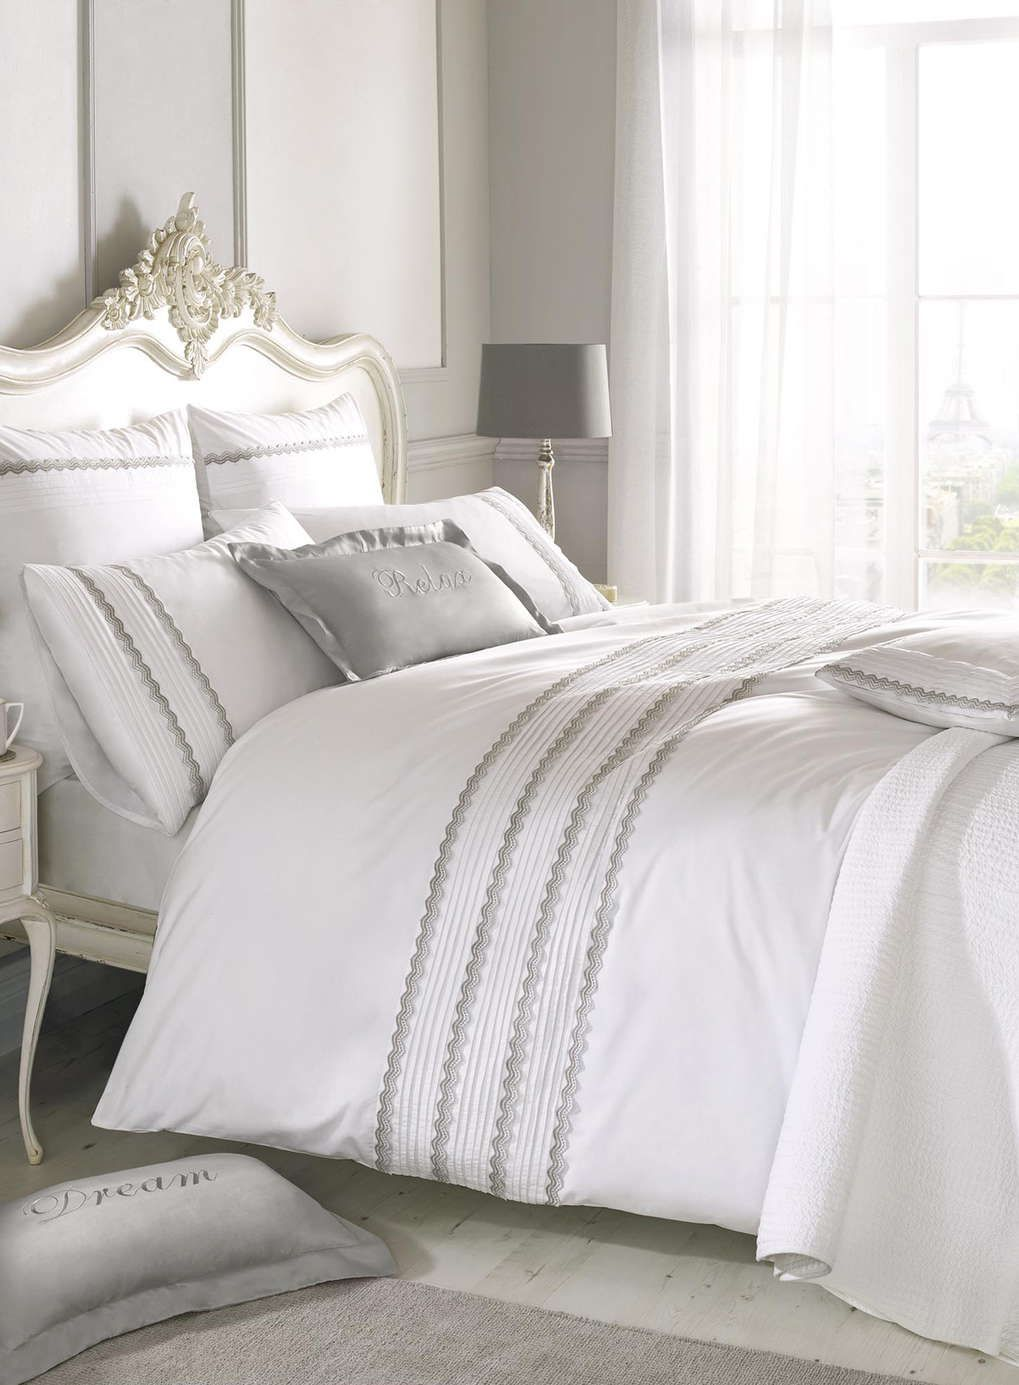 Holly Willoughby grey antique lace bedding - Limited Sizes ... : bhs quilted bedspreads - Adamdwight.com